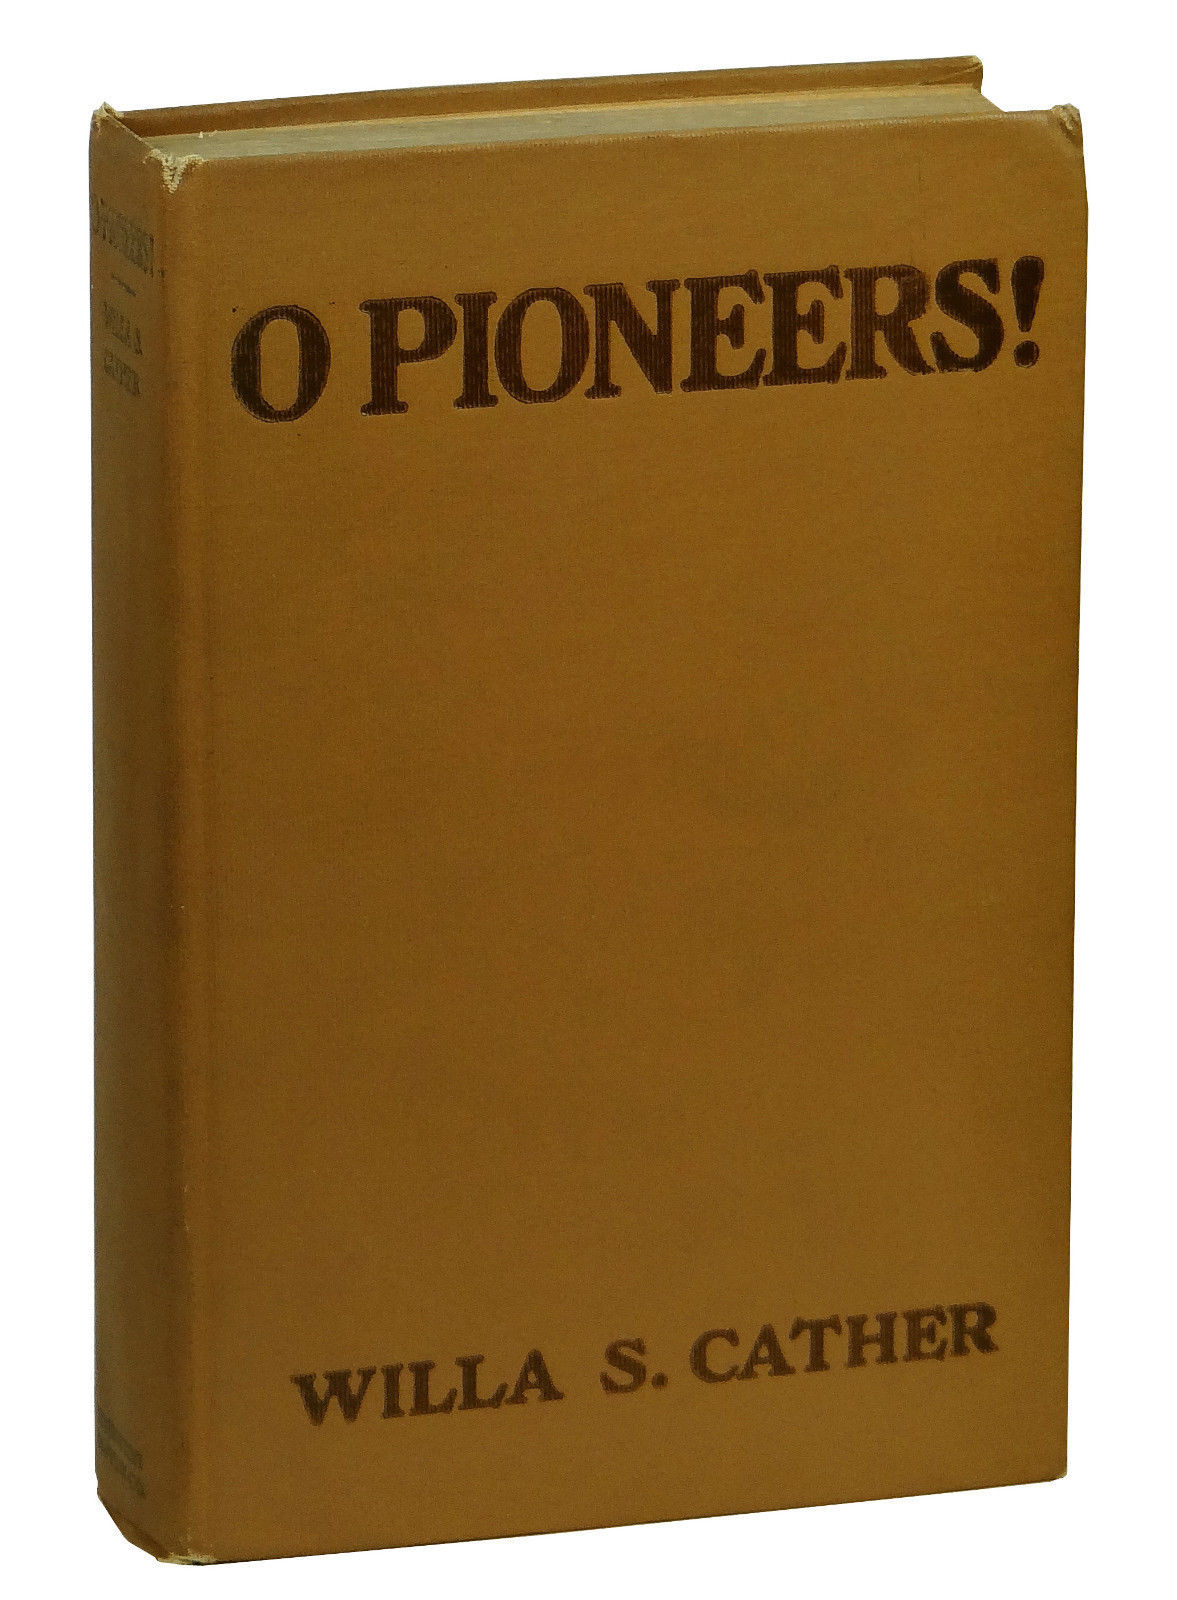 book analysis o pioneers Pioneers o pioneers is a paean of praise to the pioneers, those americans who, by great effort, succeeded in transforming wilderness into civilization whit.